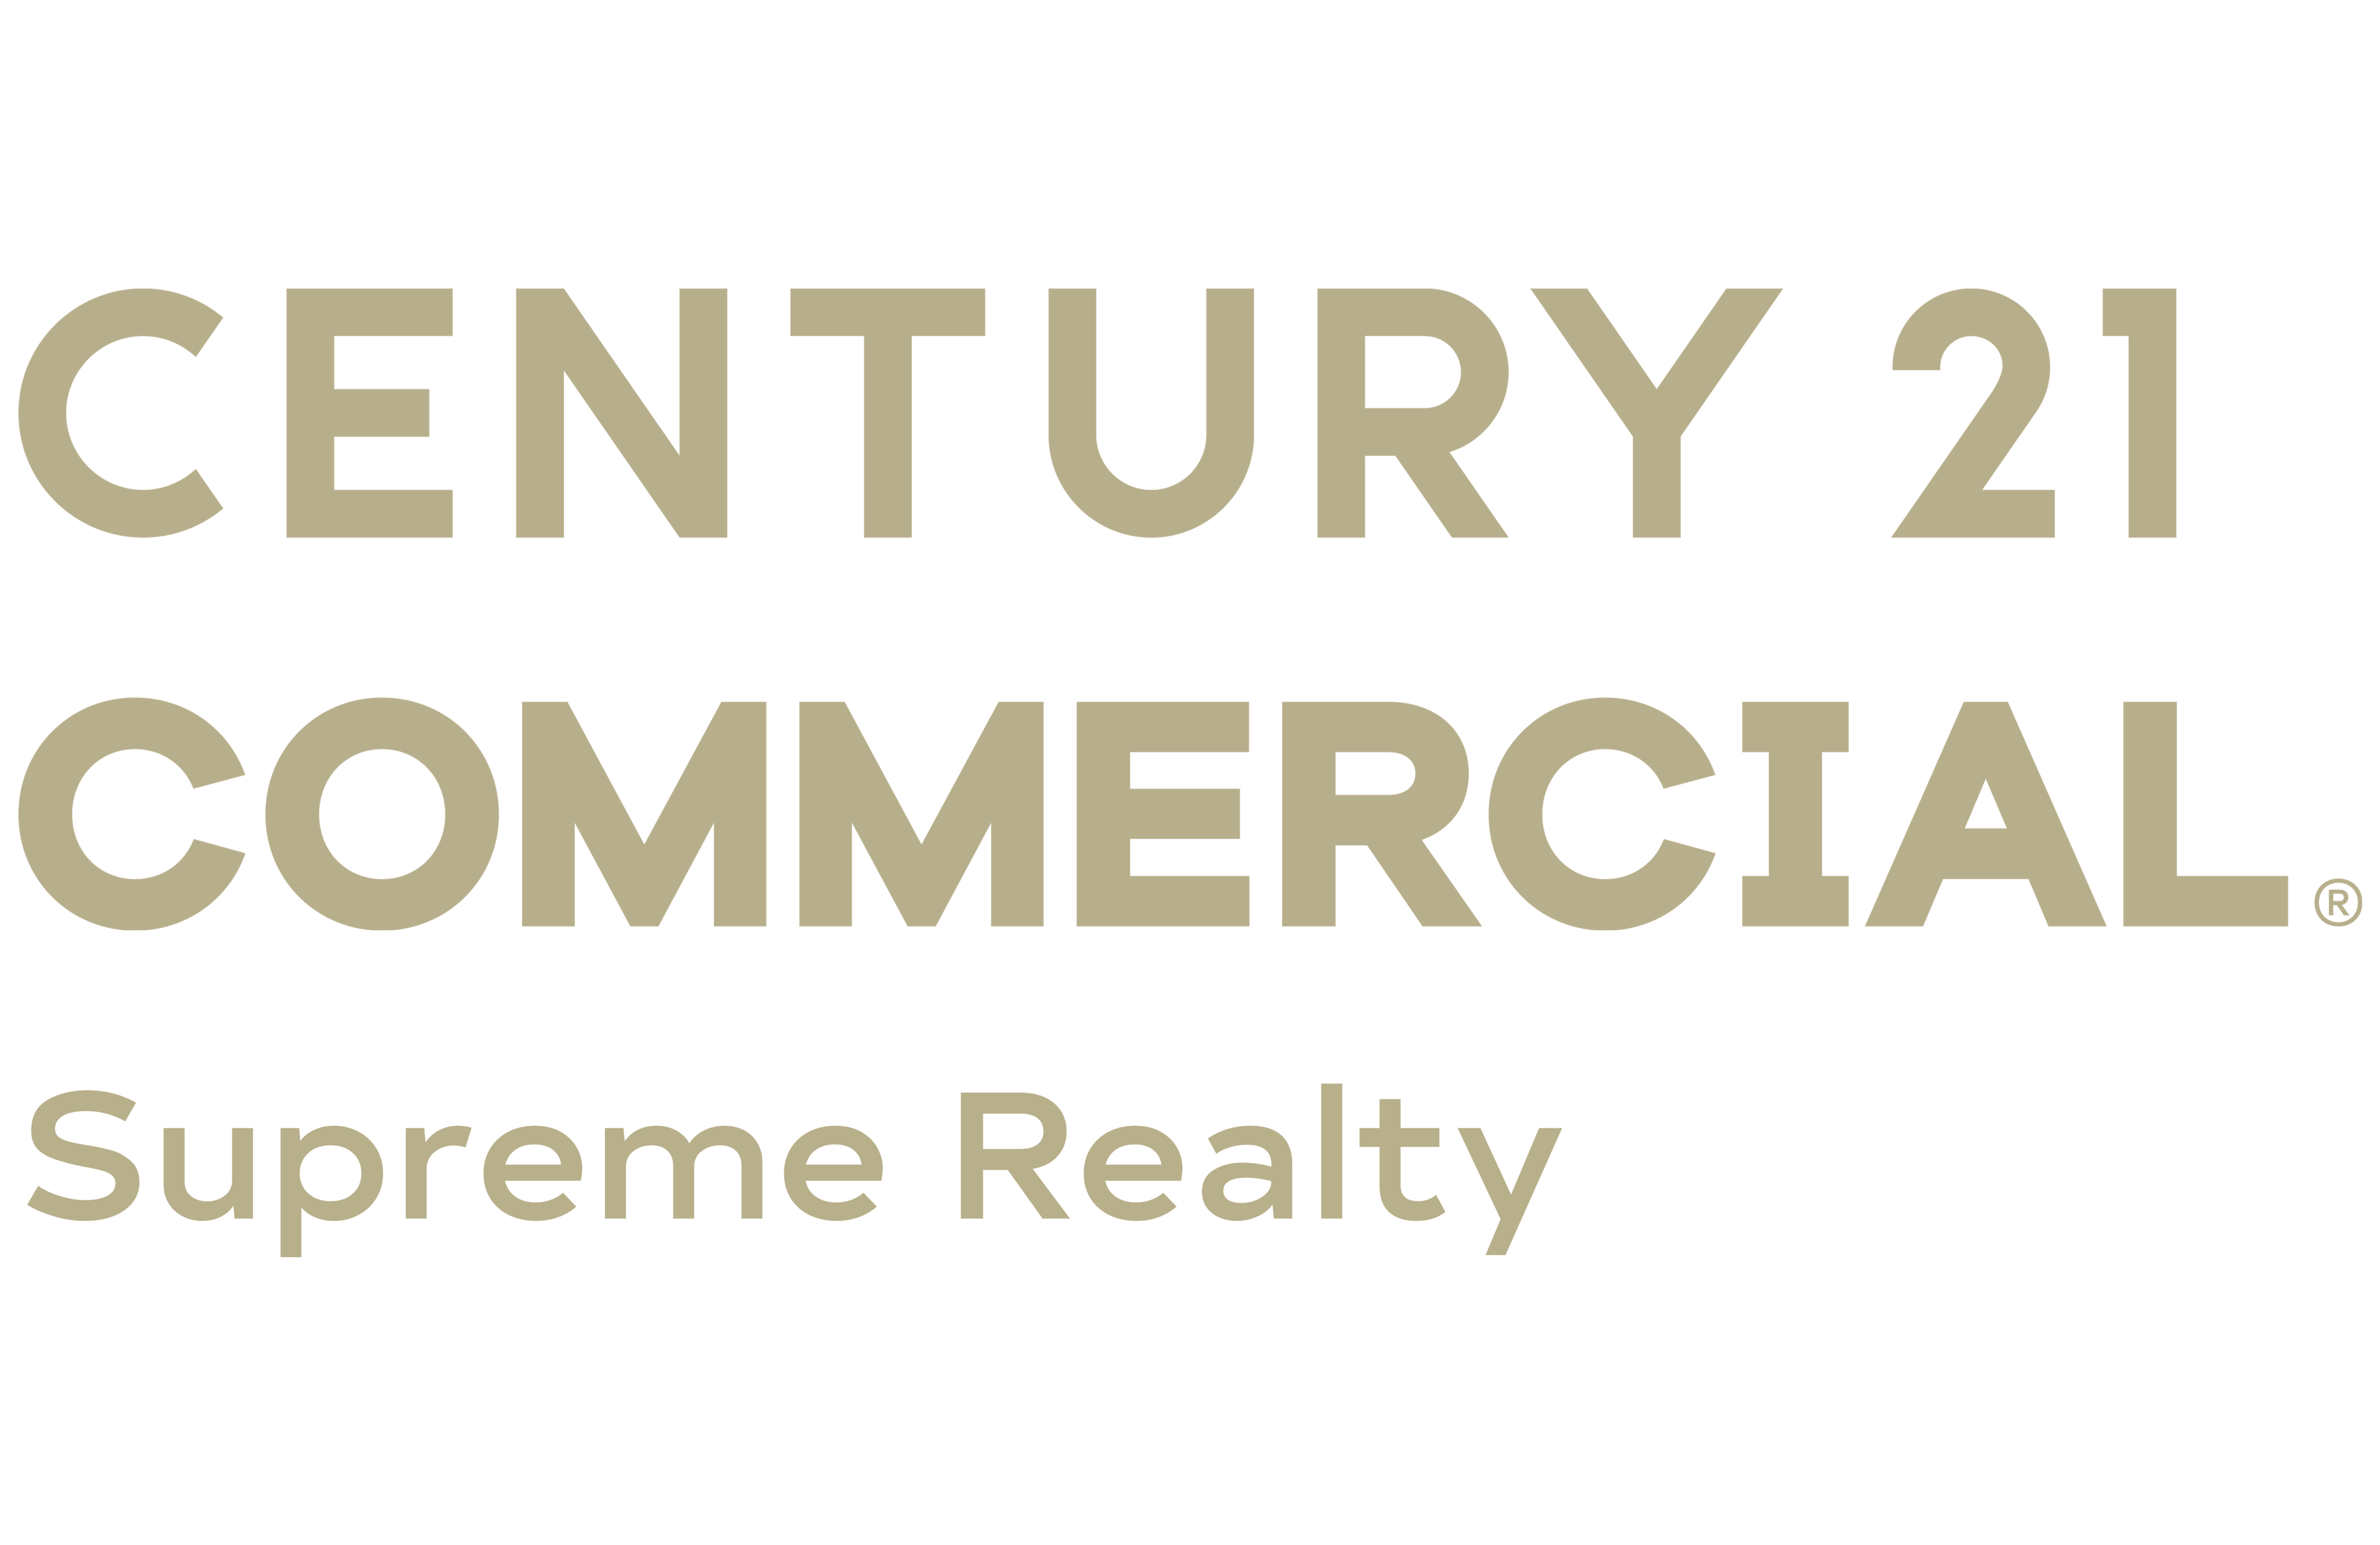 CENTURY 21 Supreme Realty